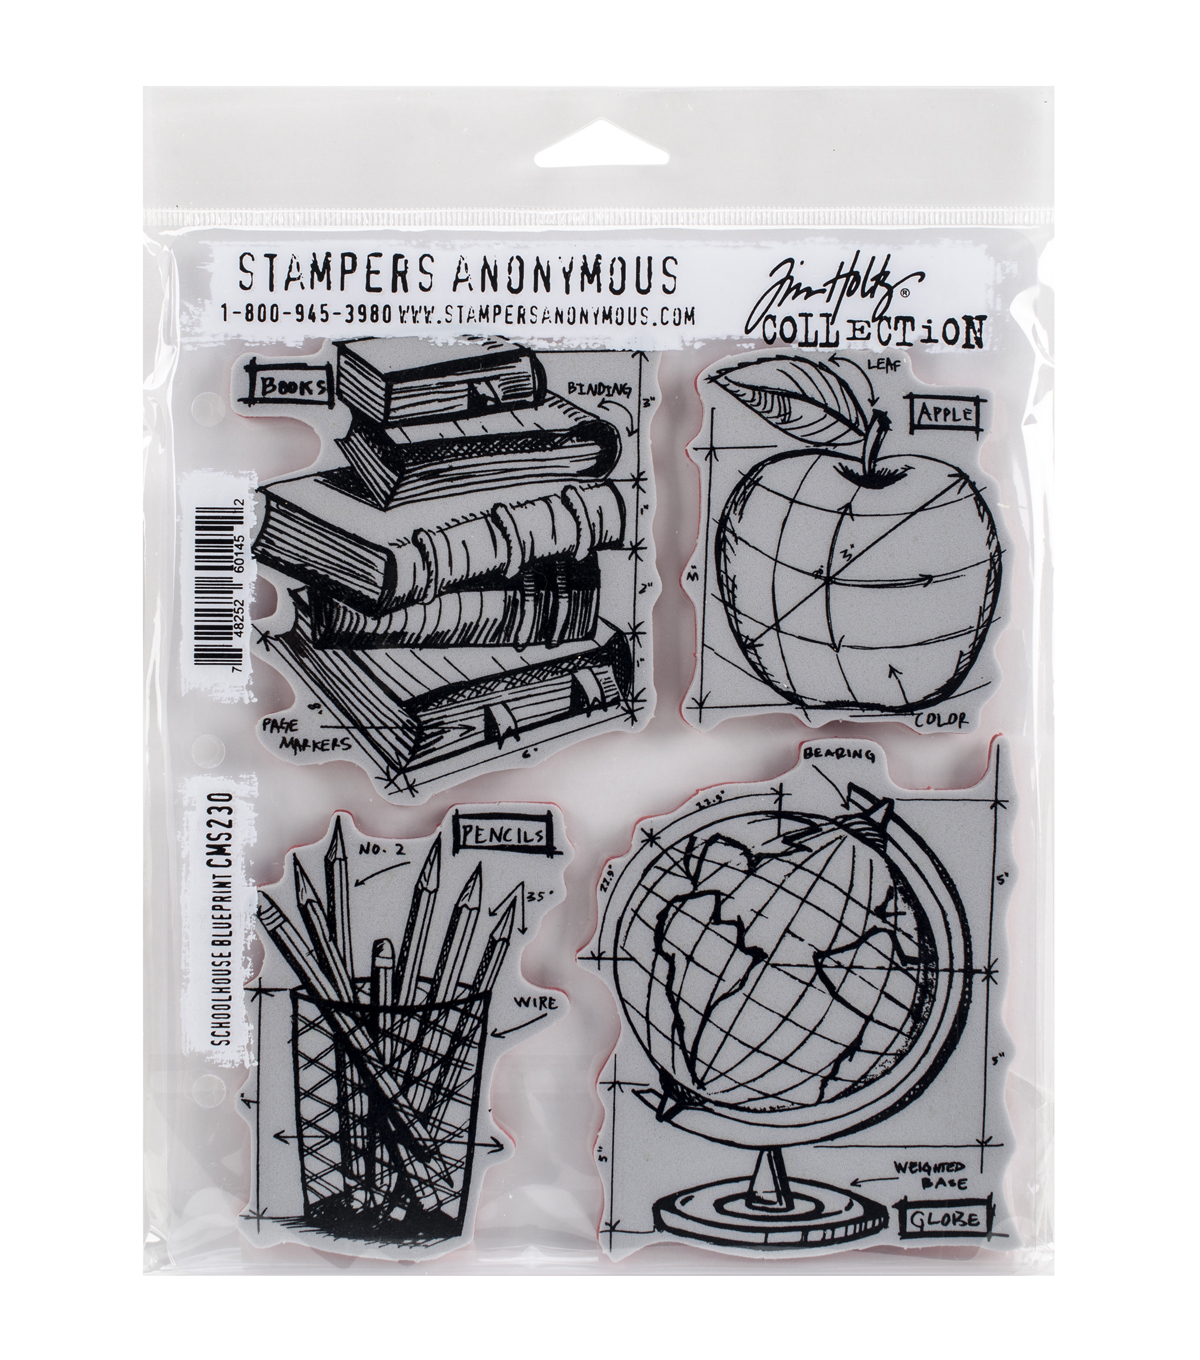 Tim Holtz Cling Stamps 7\u0022X8.5\u0022-Schoolhouse Blueprint